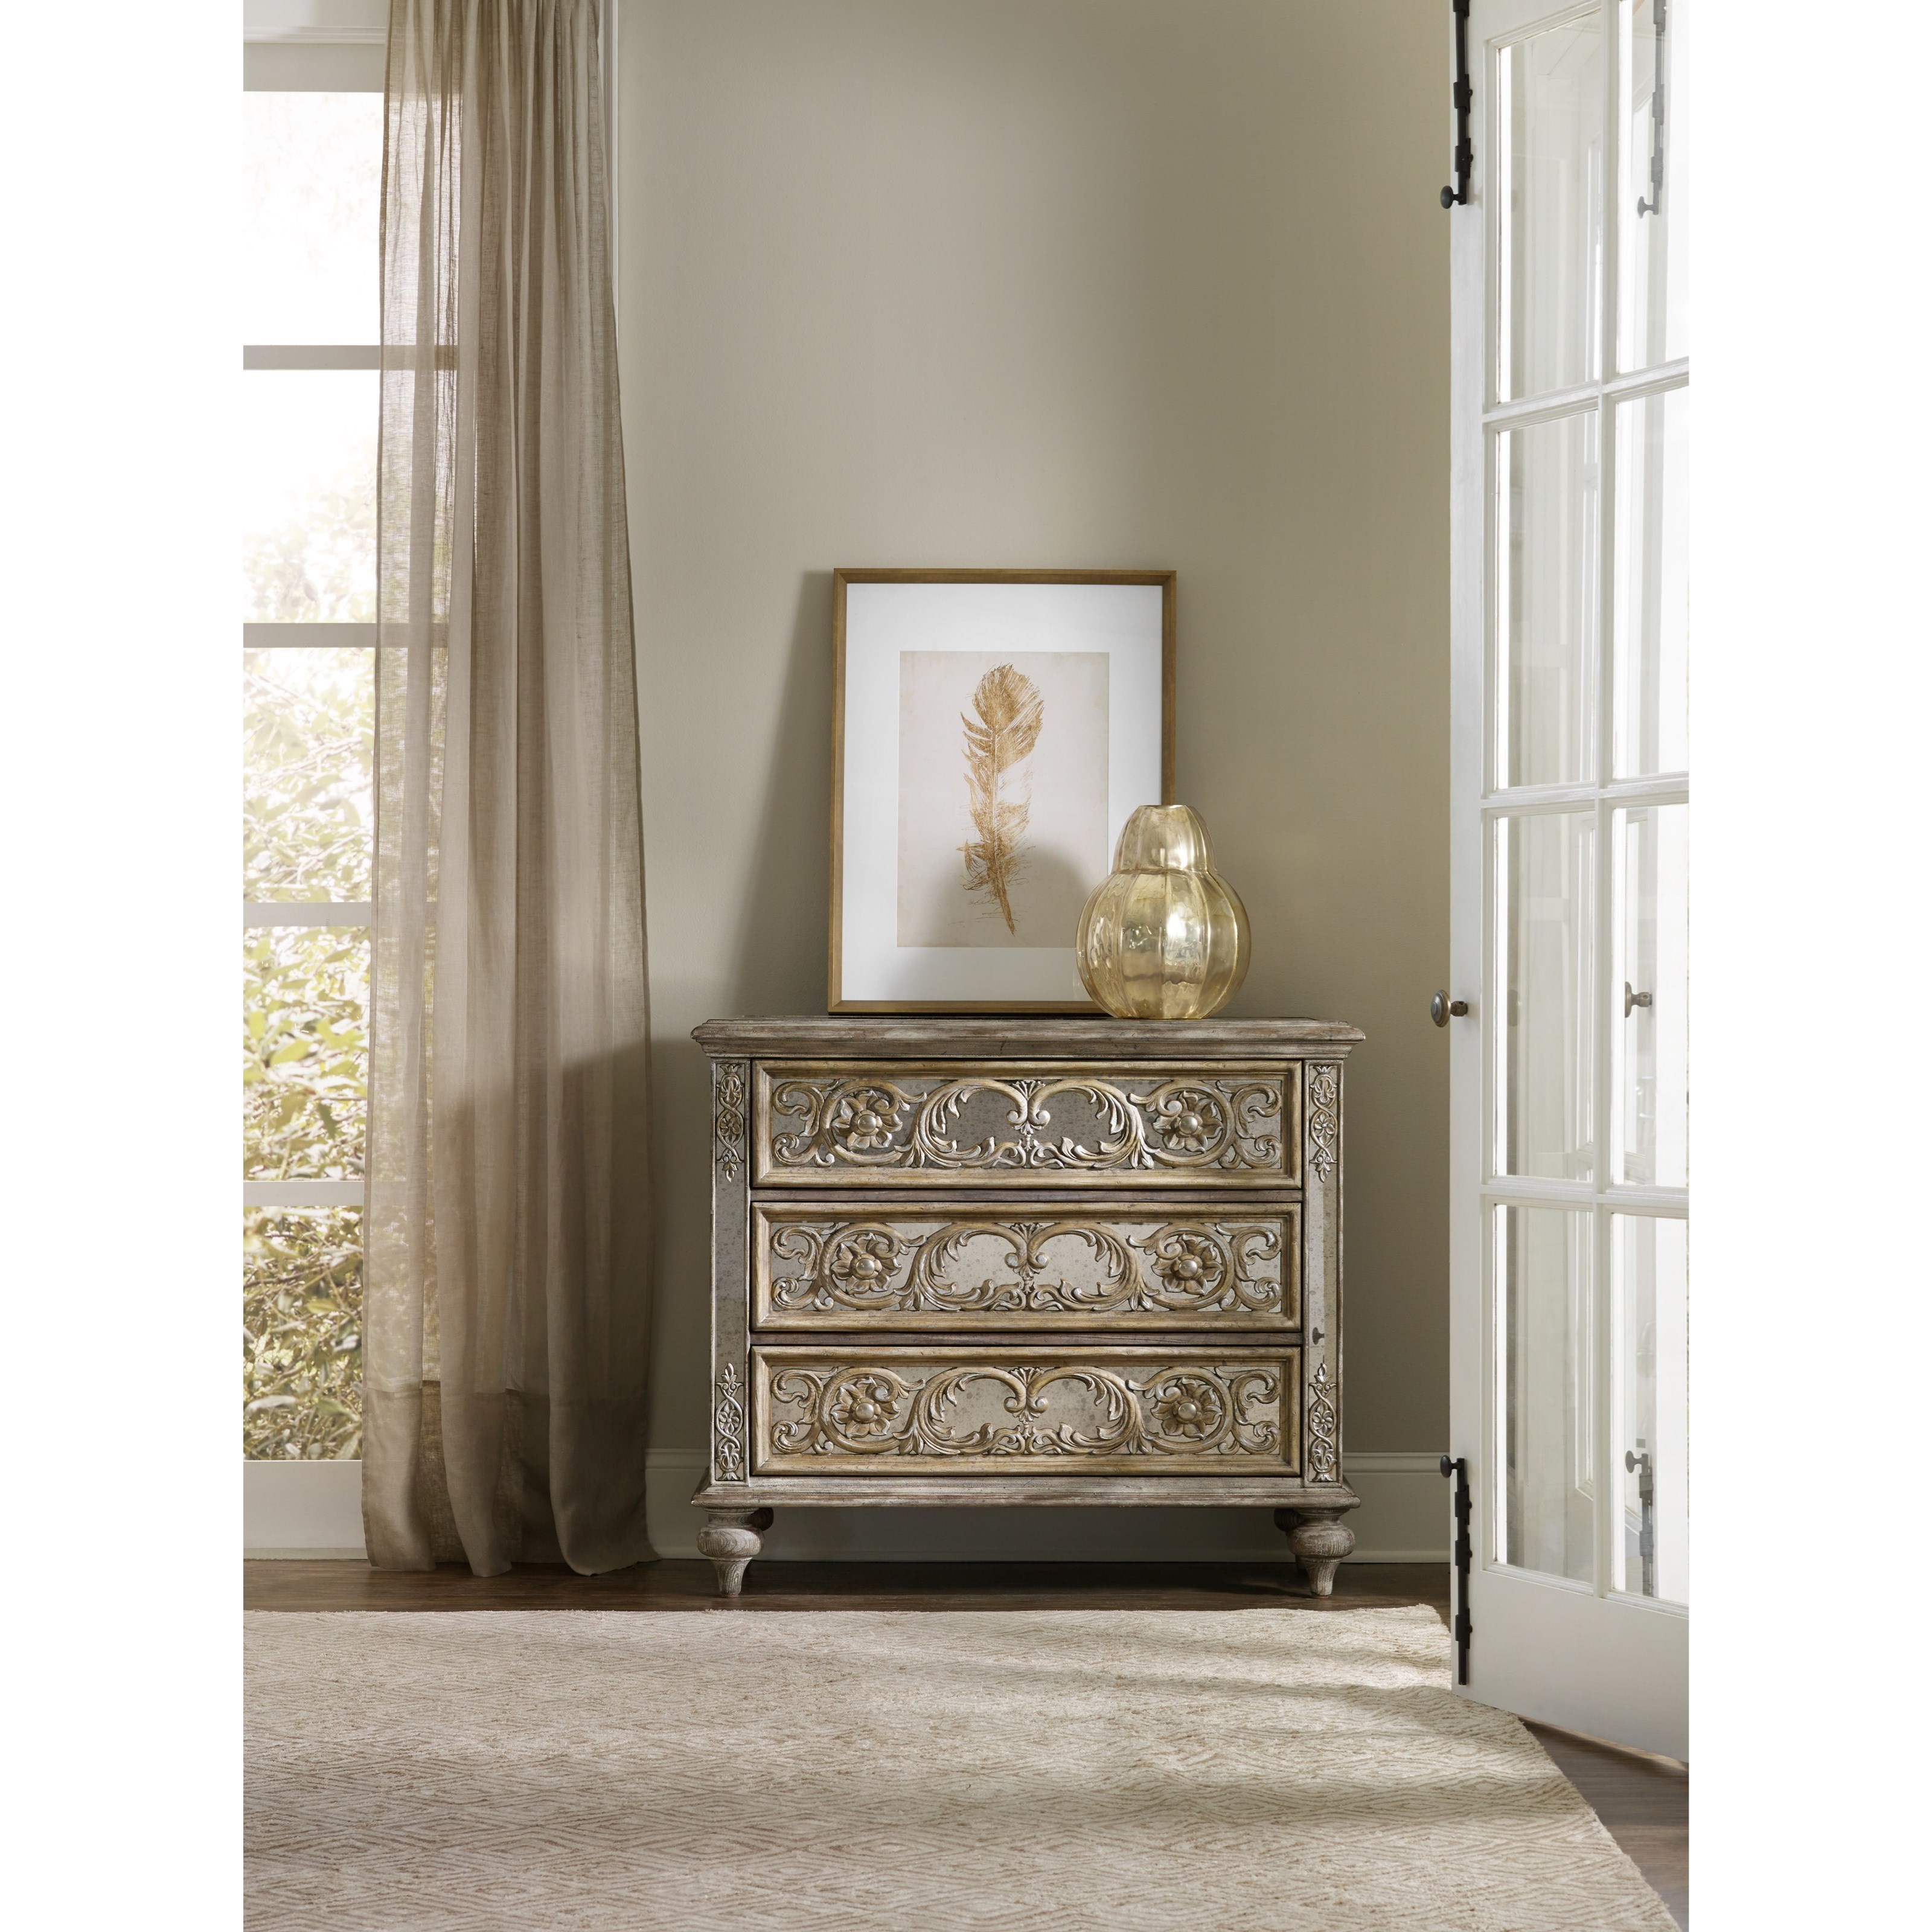 Hooker furniture living room accents ornate mirrored chest with 3 drawers reeds furniture Mirrored living room furniture